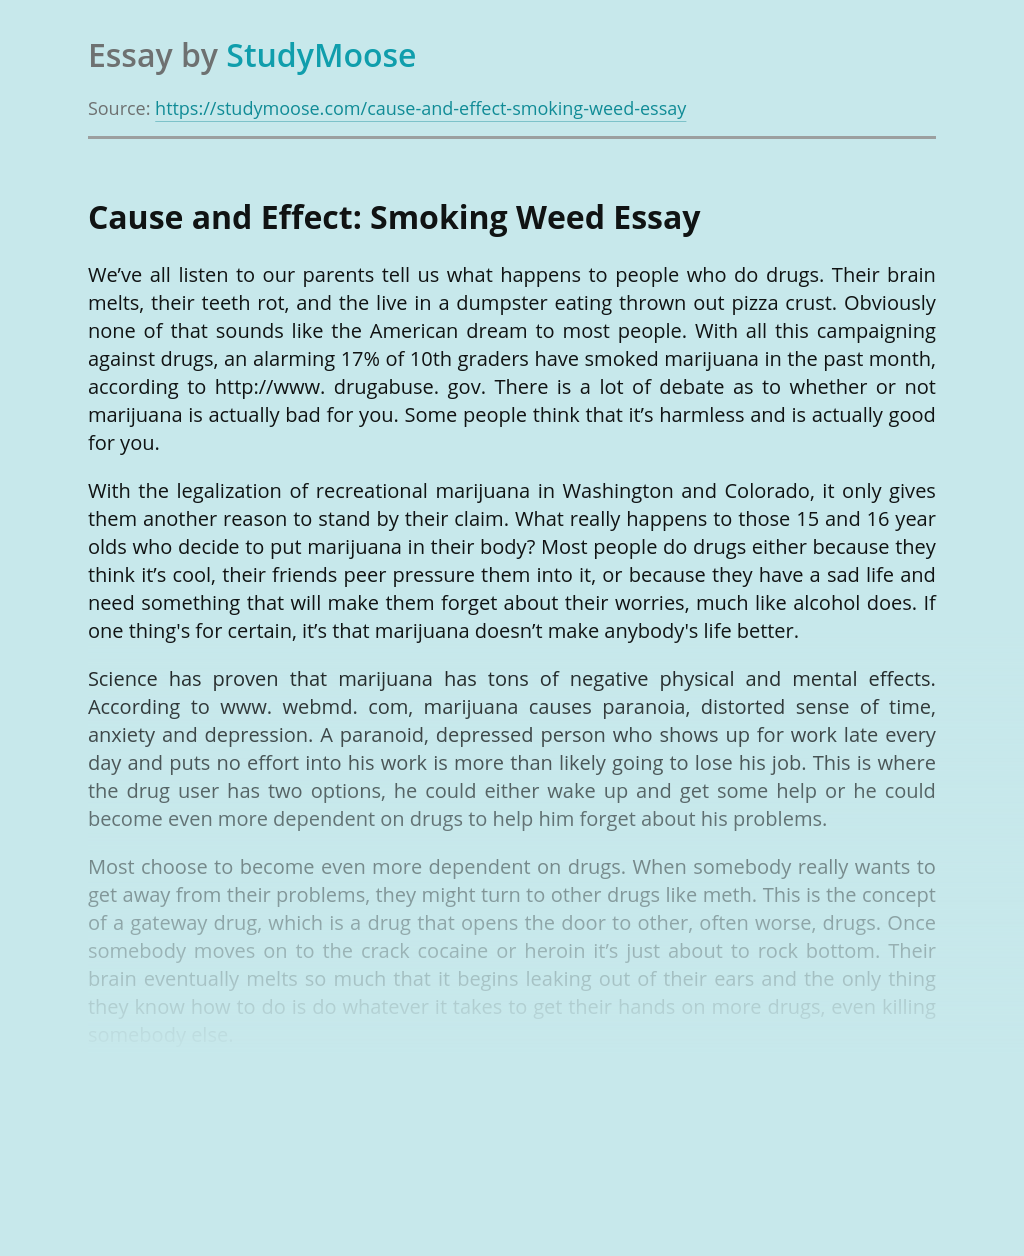 Cause and Effect: Smoking Weed